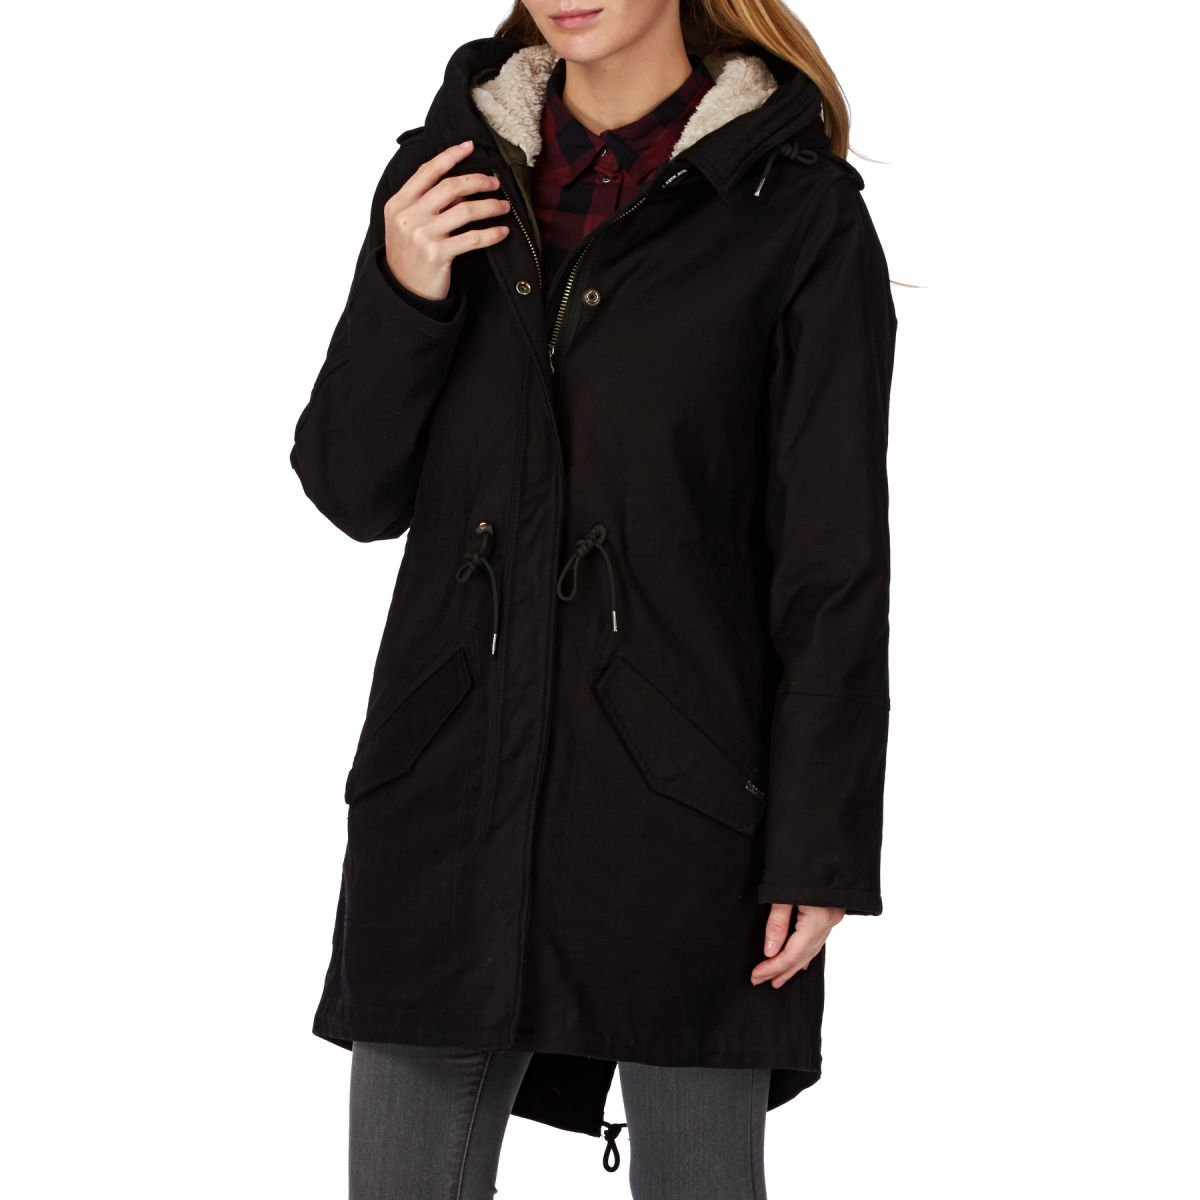 Maison Scotch Parka Jacket - Navy